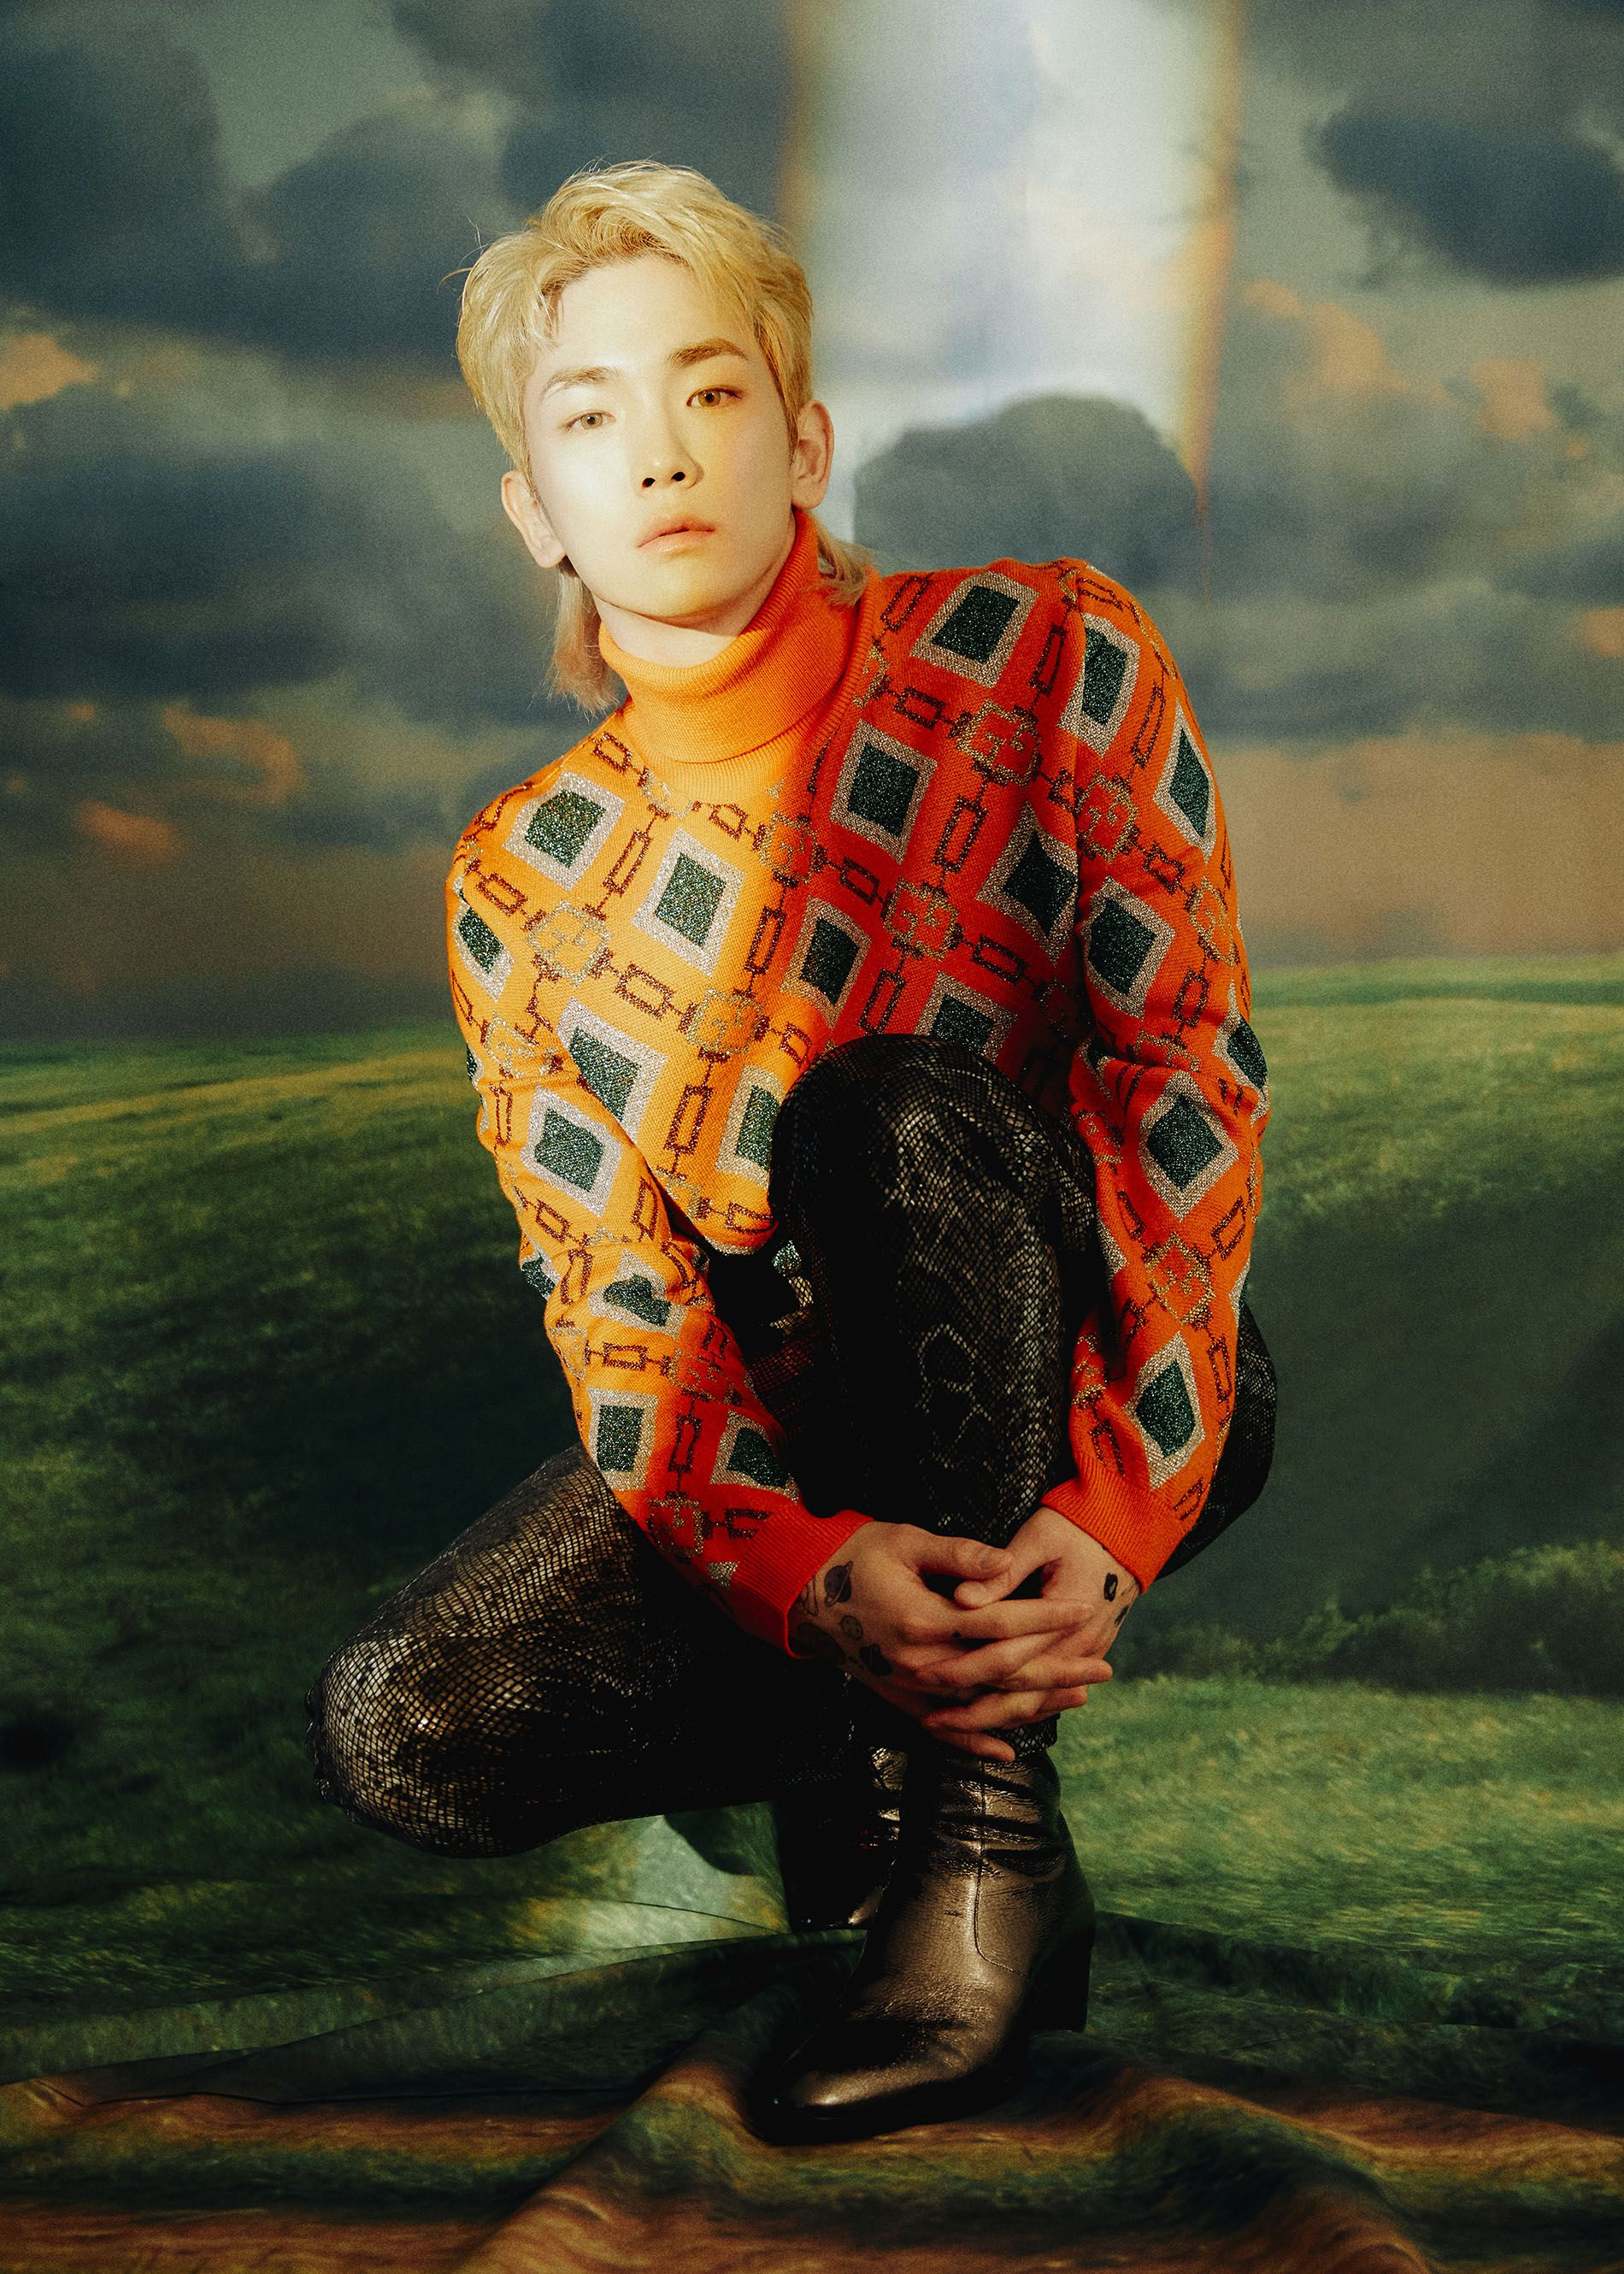 SHINee Key (SM Entertainment) presents a rich musical gift with its